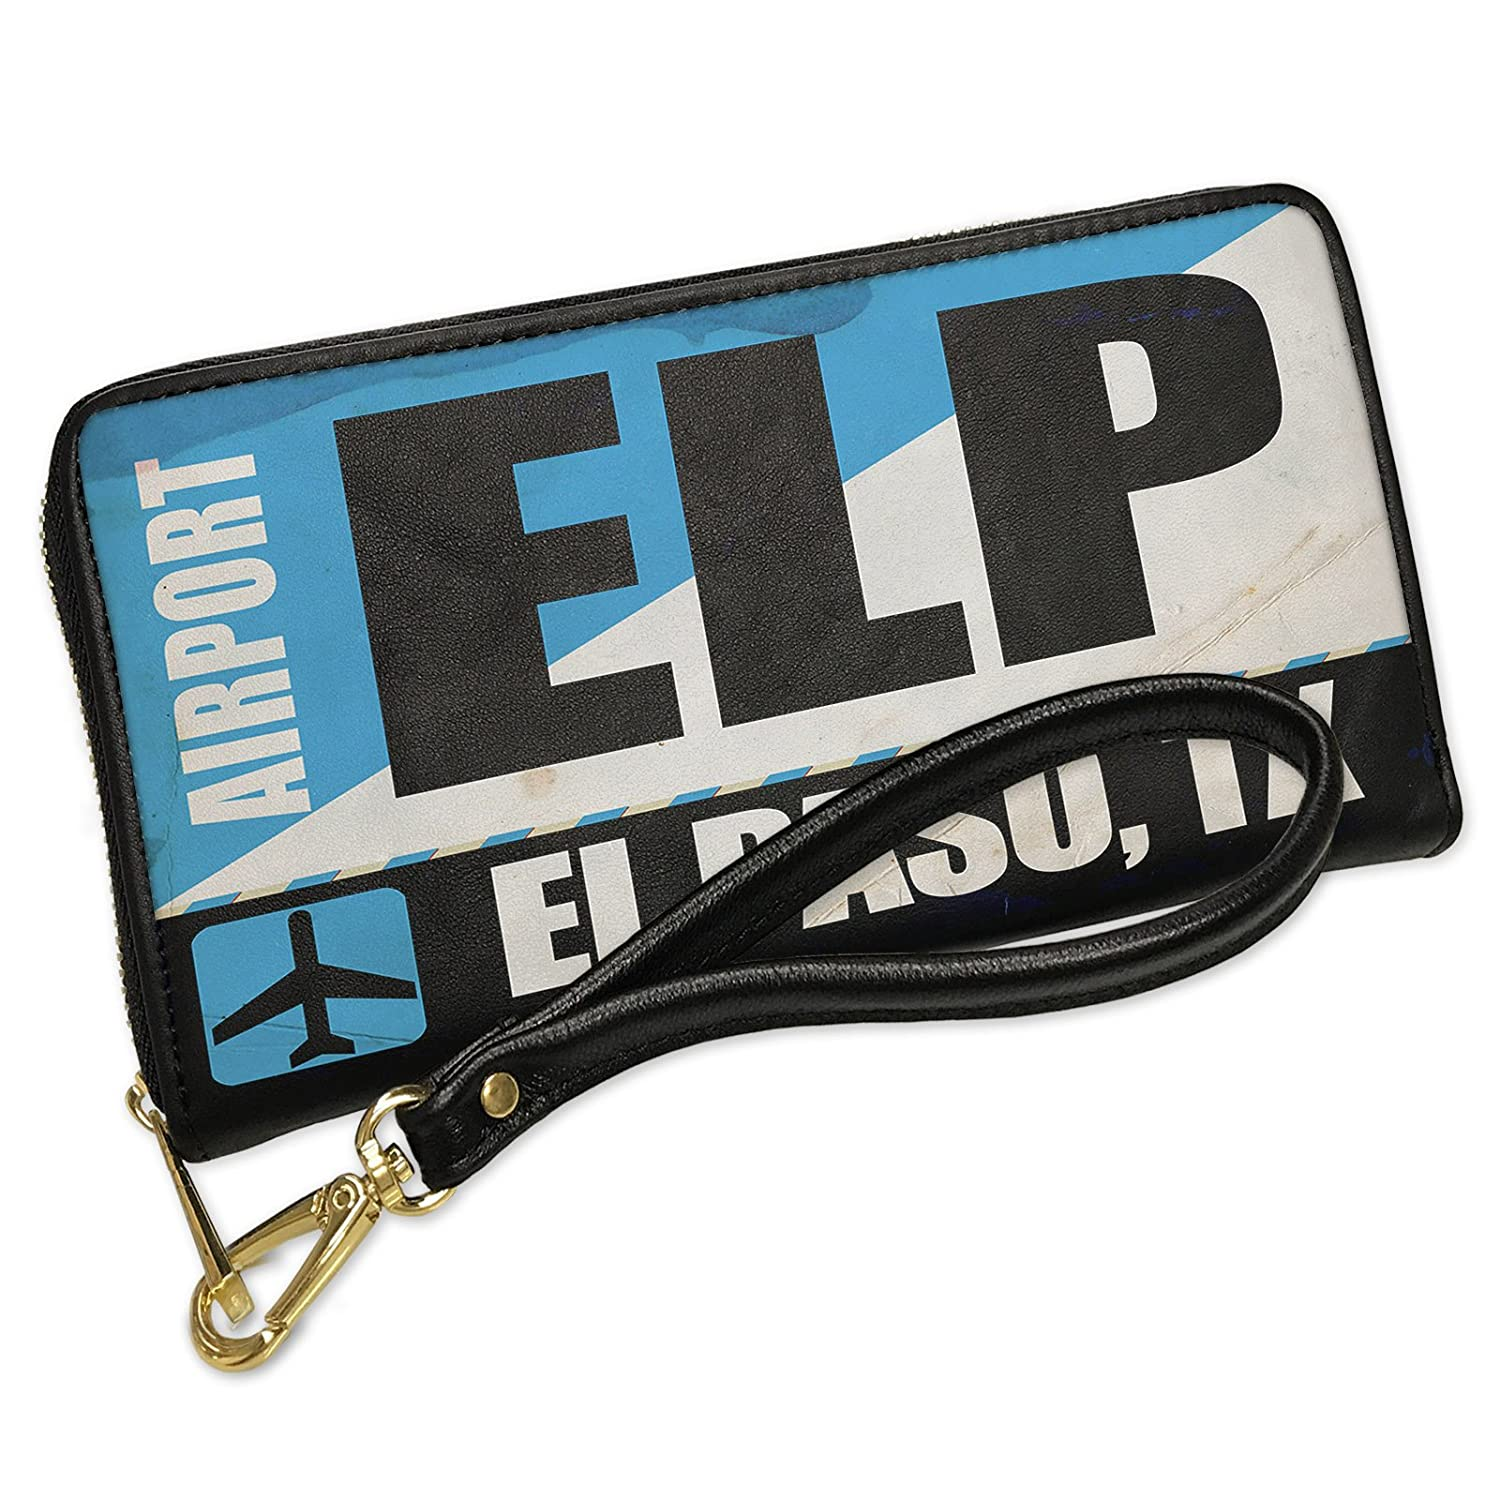 Amazon.com: Wallet Airportcode ELP El Paso, TX Mens Bifold ID Case - Neonblond: Clothing